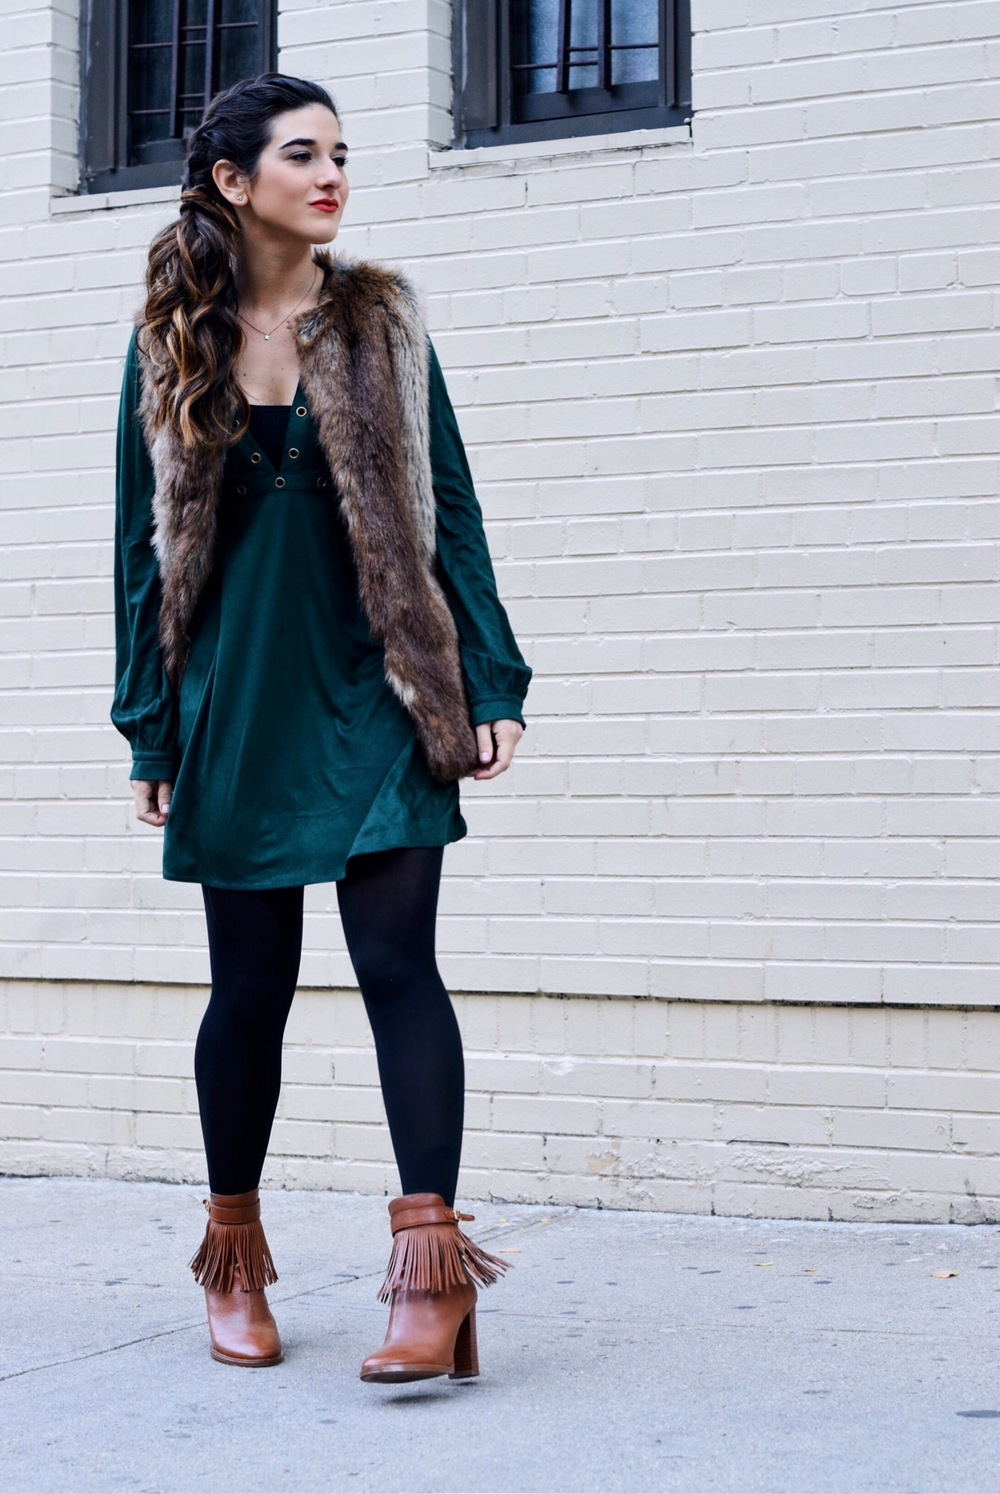 Suede Eyelet Dress Trescool Louboutins & Love Fashion Blog Esther Santer Street Style NYC Blogger Fall Winter Black Tights Ivanka Trump Fringe Booties Camel Hair Girl Women Beautiful Photoshoot Model Outfit OOTD Inspo Trendy Zara Fur Vest What To Wear.JPG